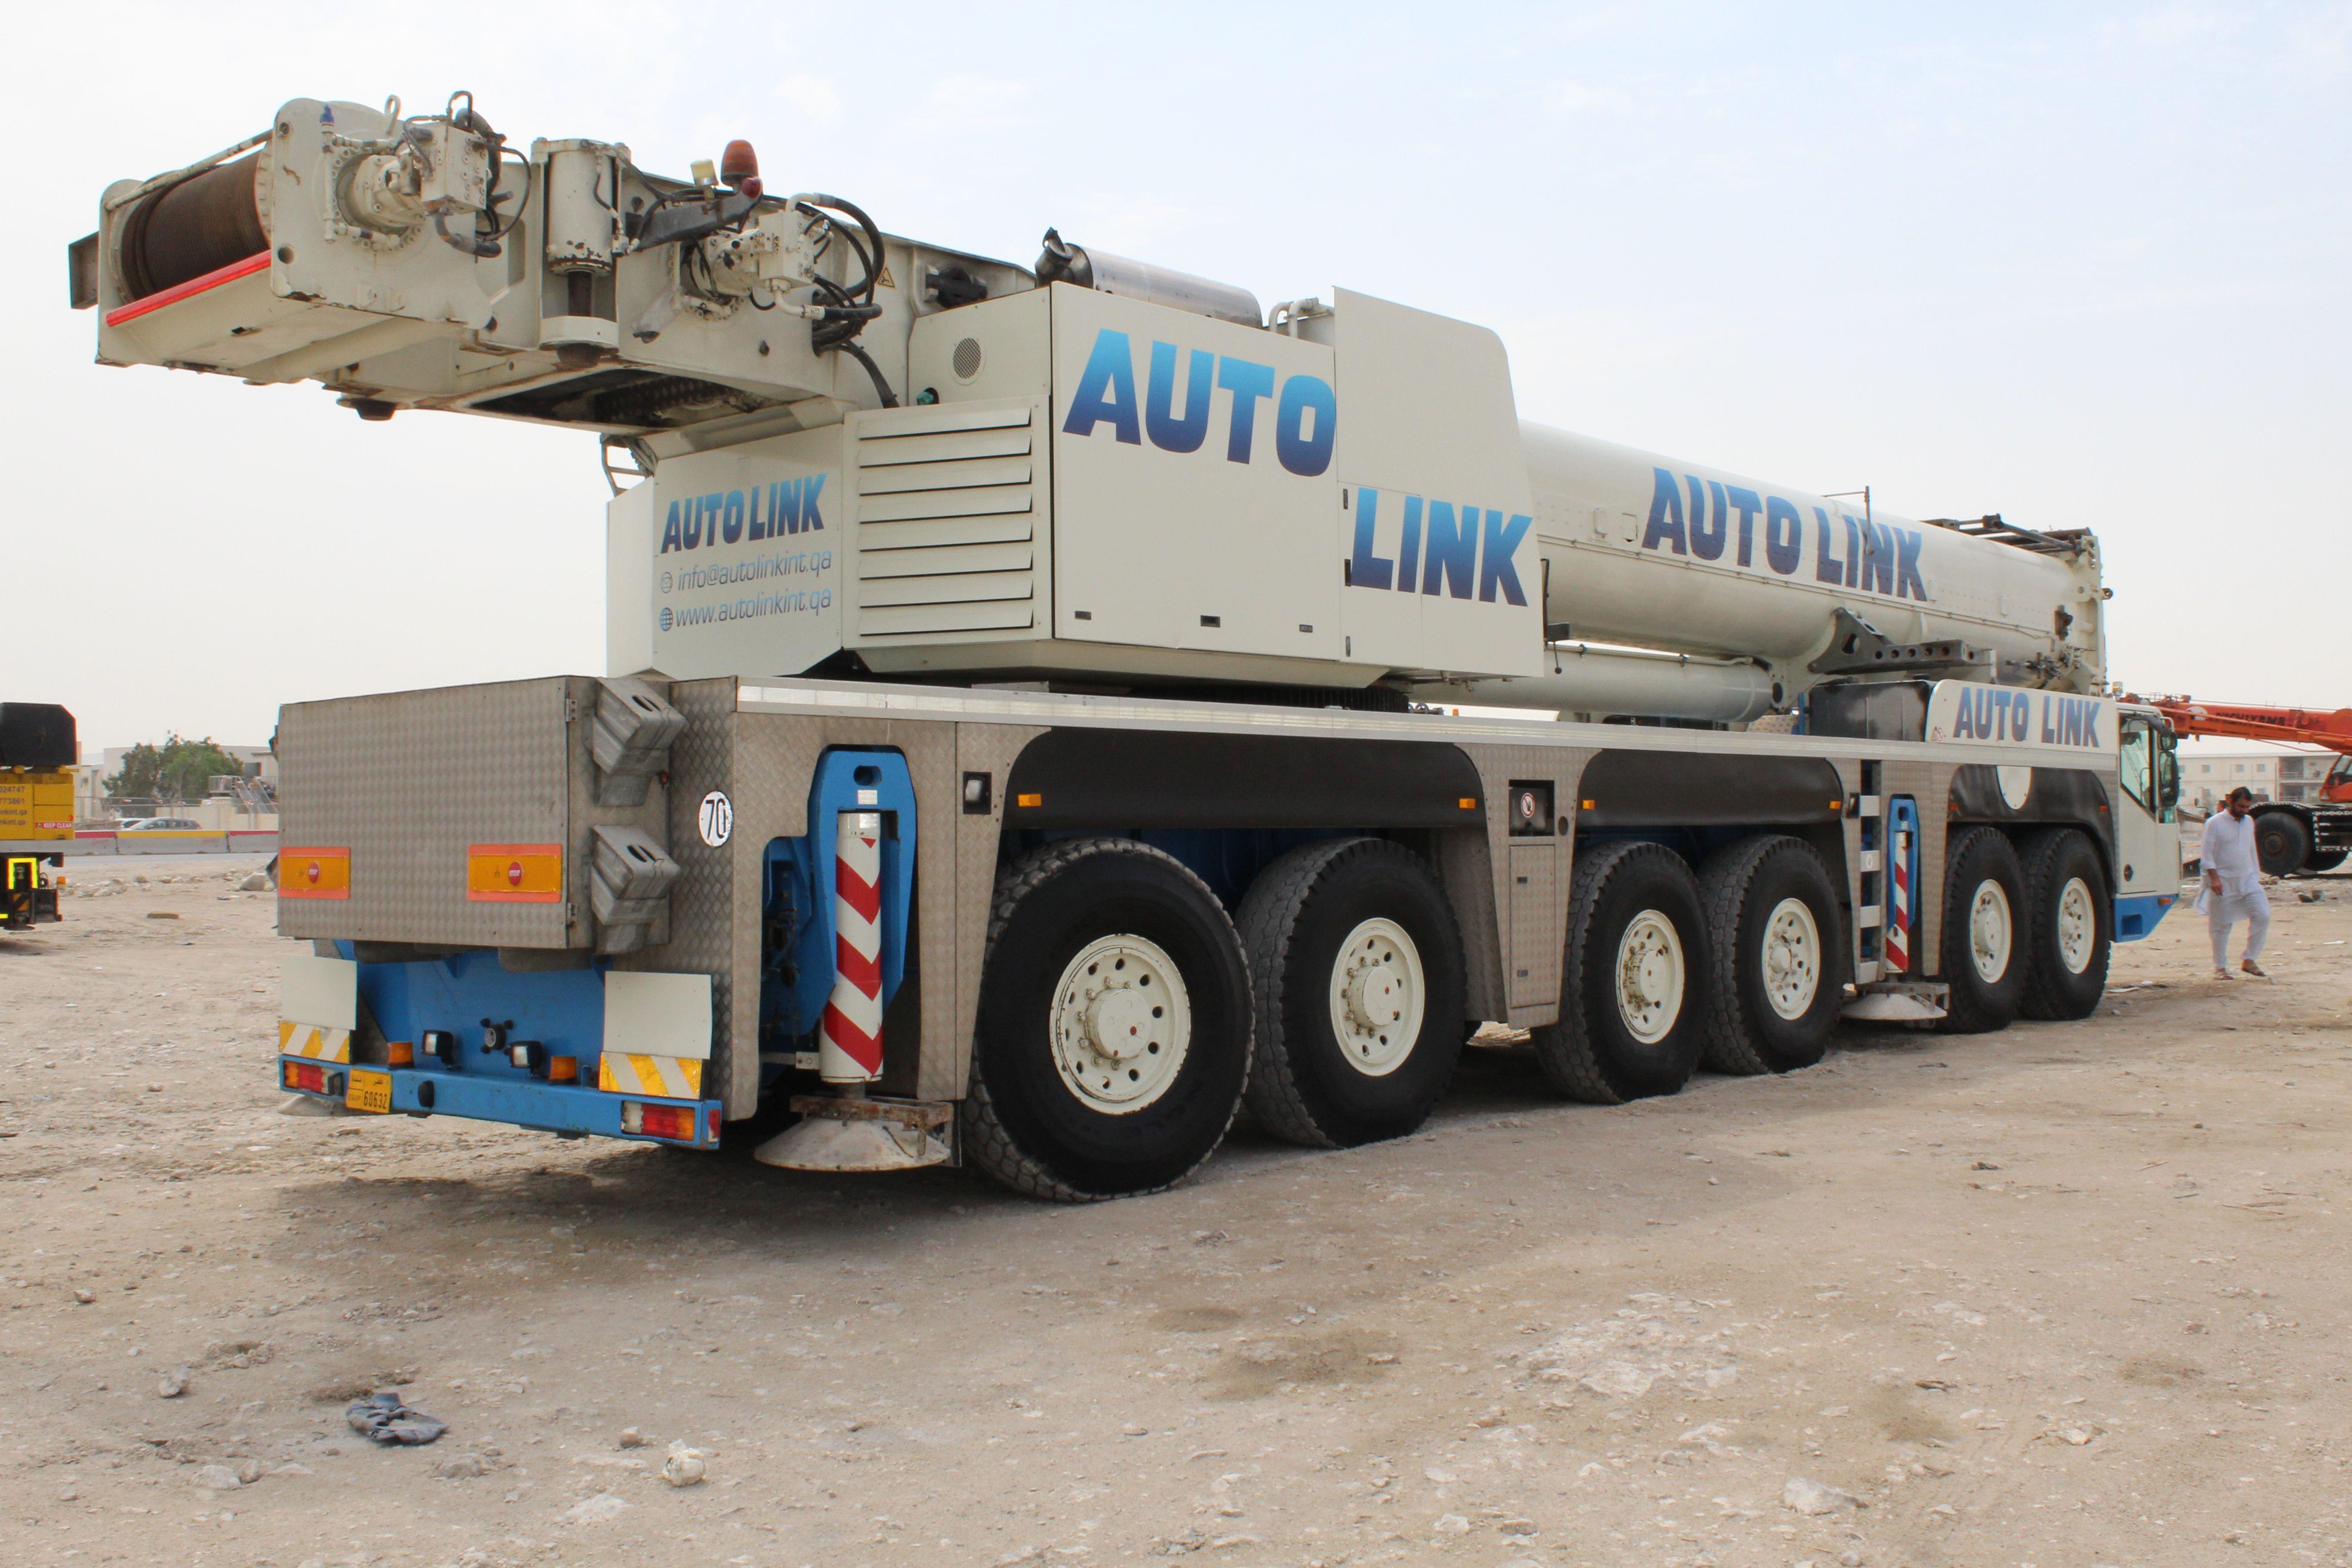 Auto Link International is one of the main multifunctional